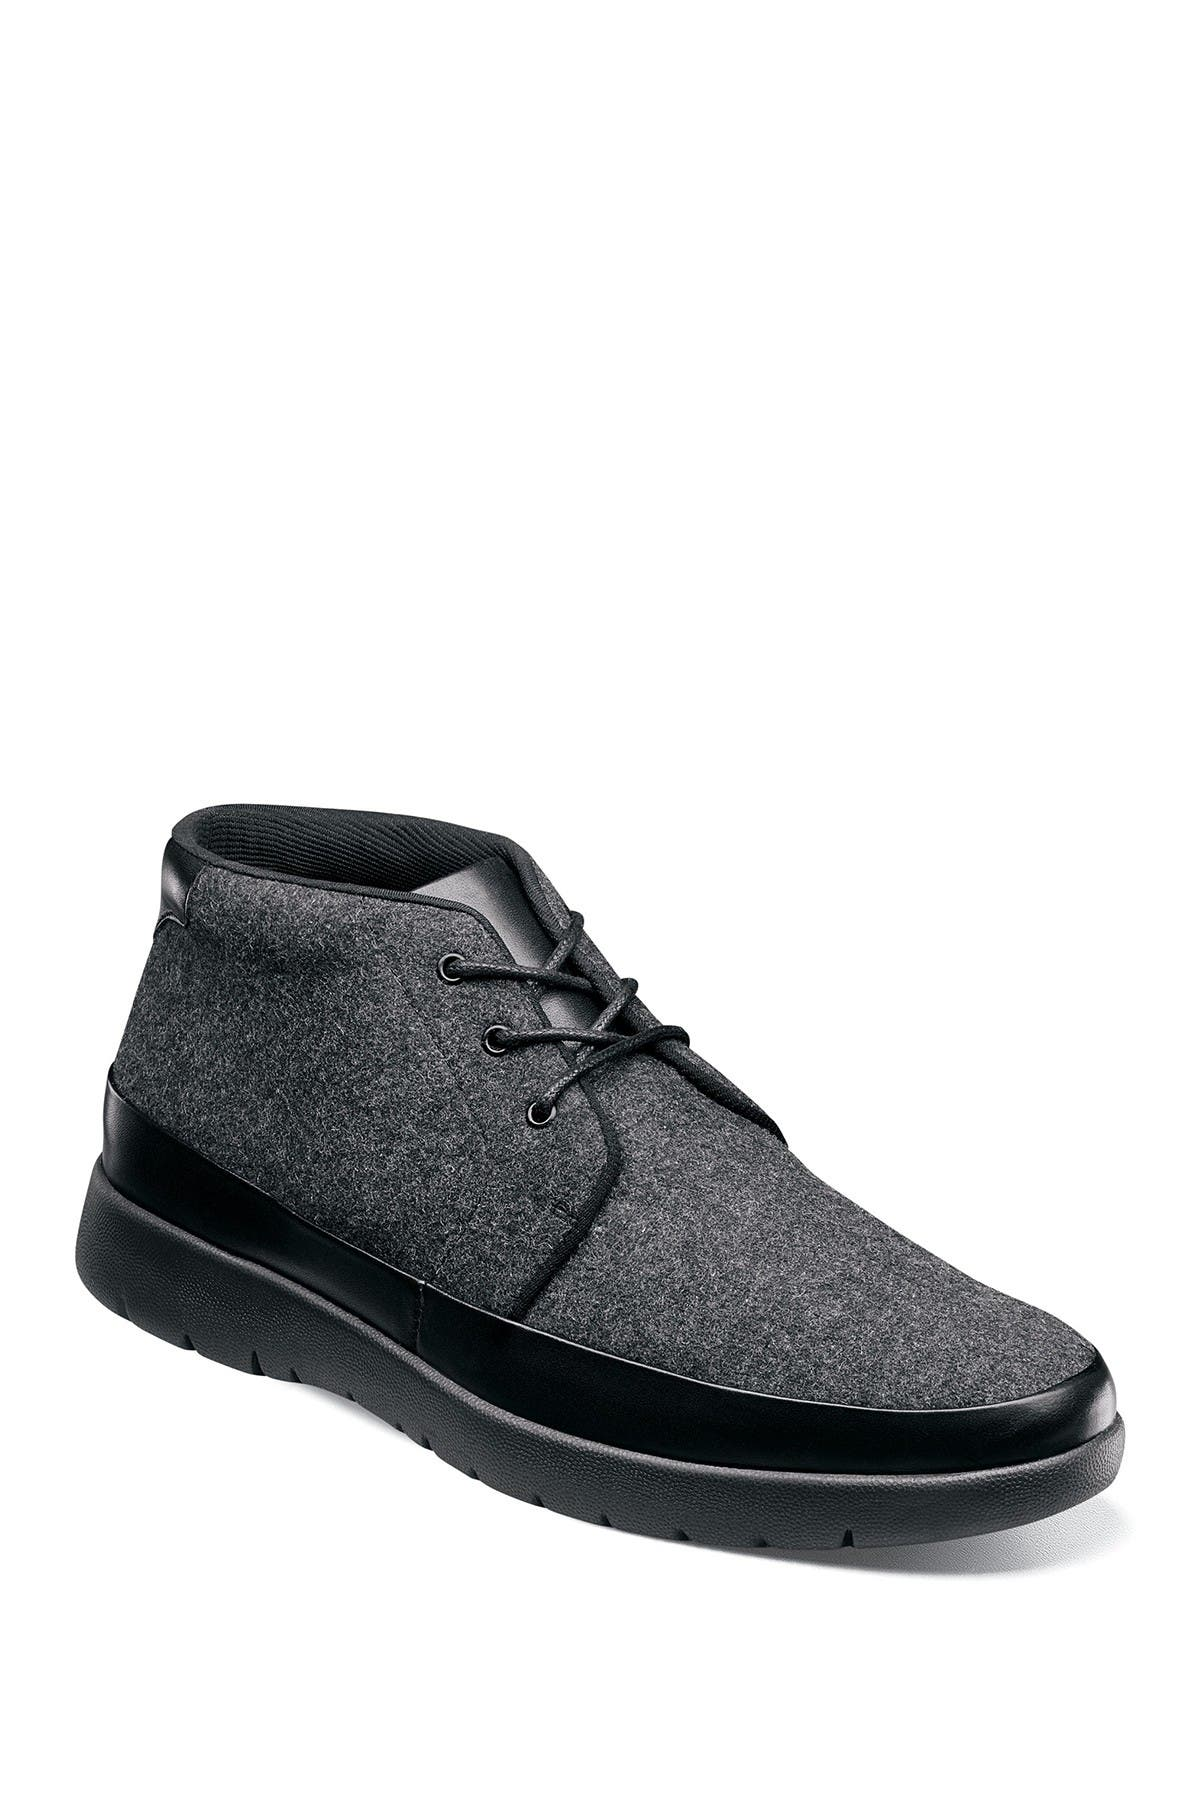 Image of Stacy Adams Hartley Mid Lace Up Sneaker